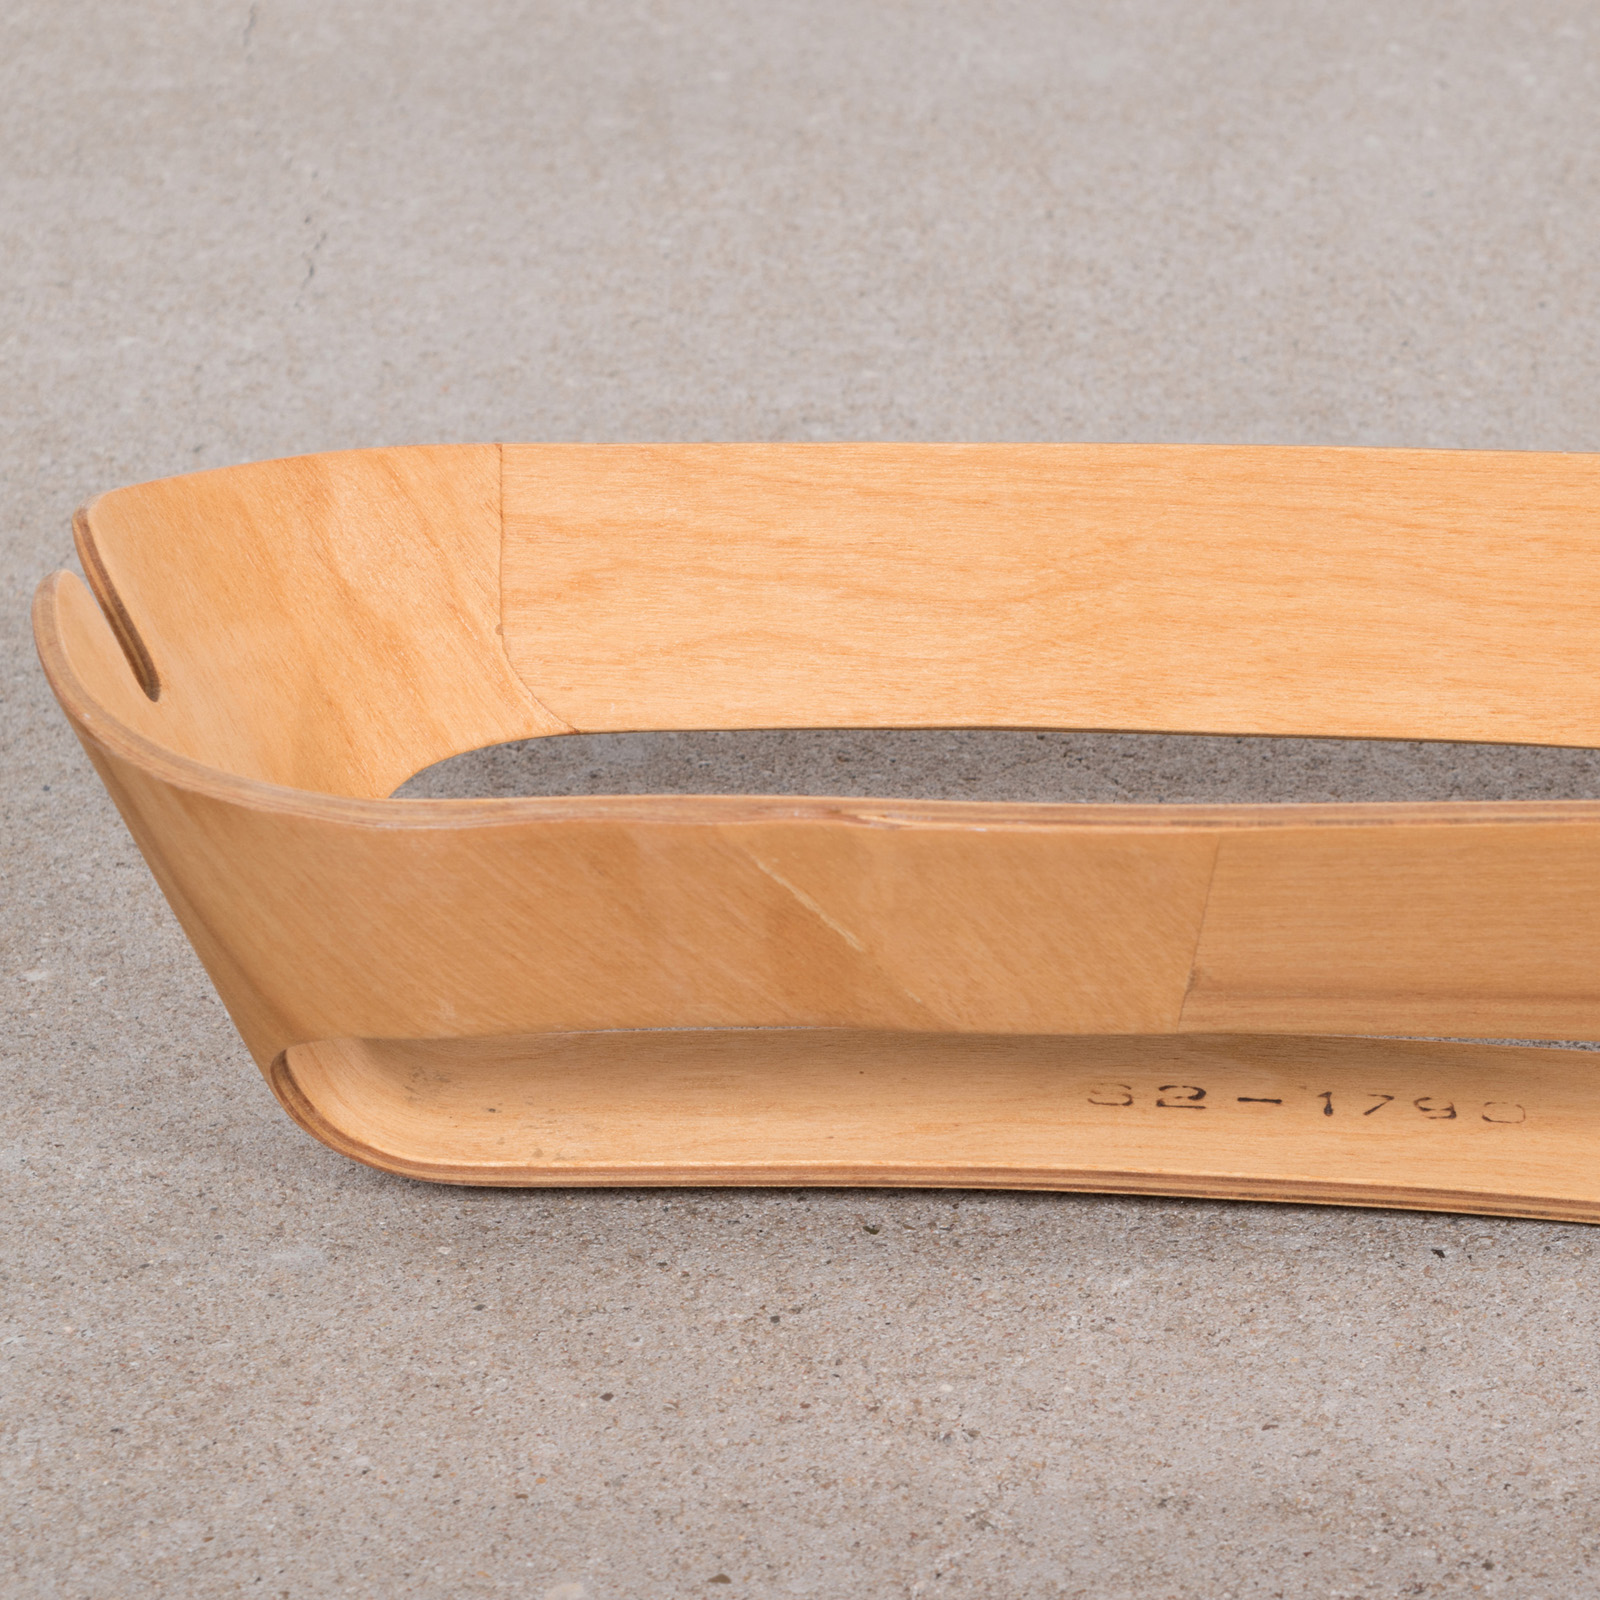 Wooden 1940s Evans Plywood Products Eames War Time Leg Splint Wartime in very good condition